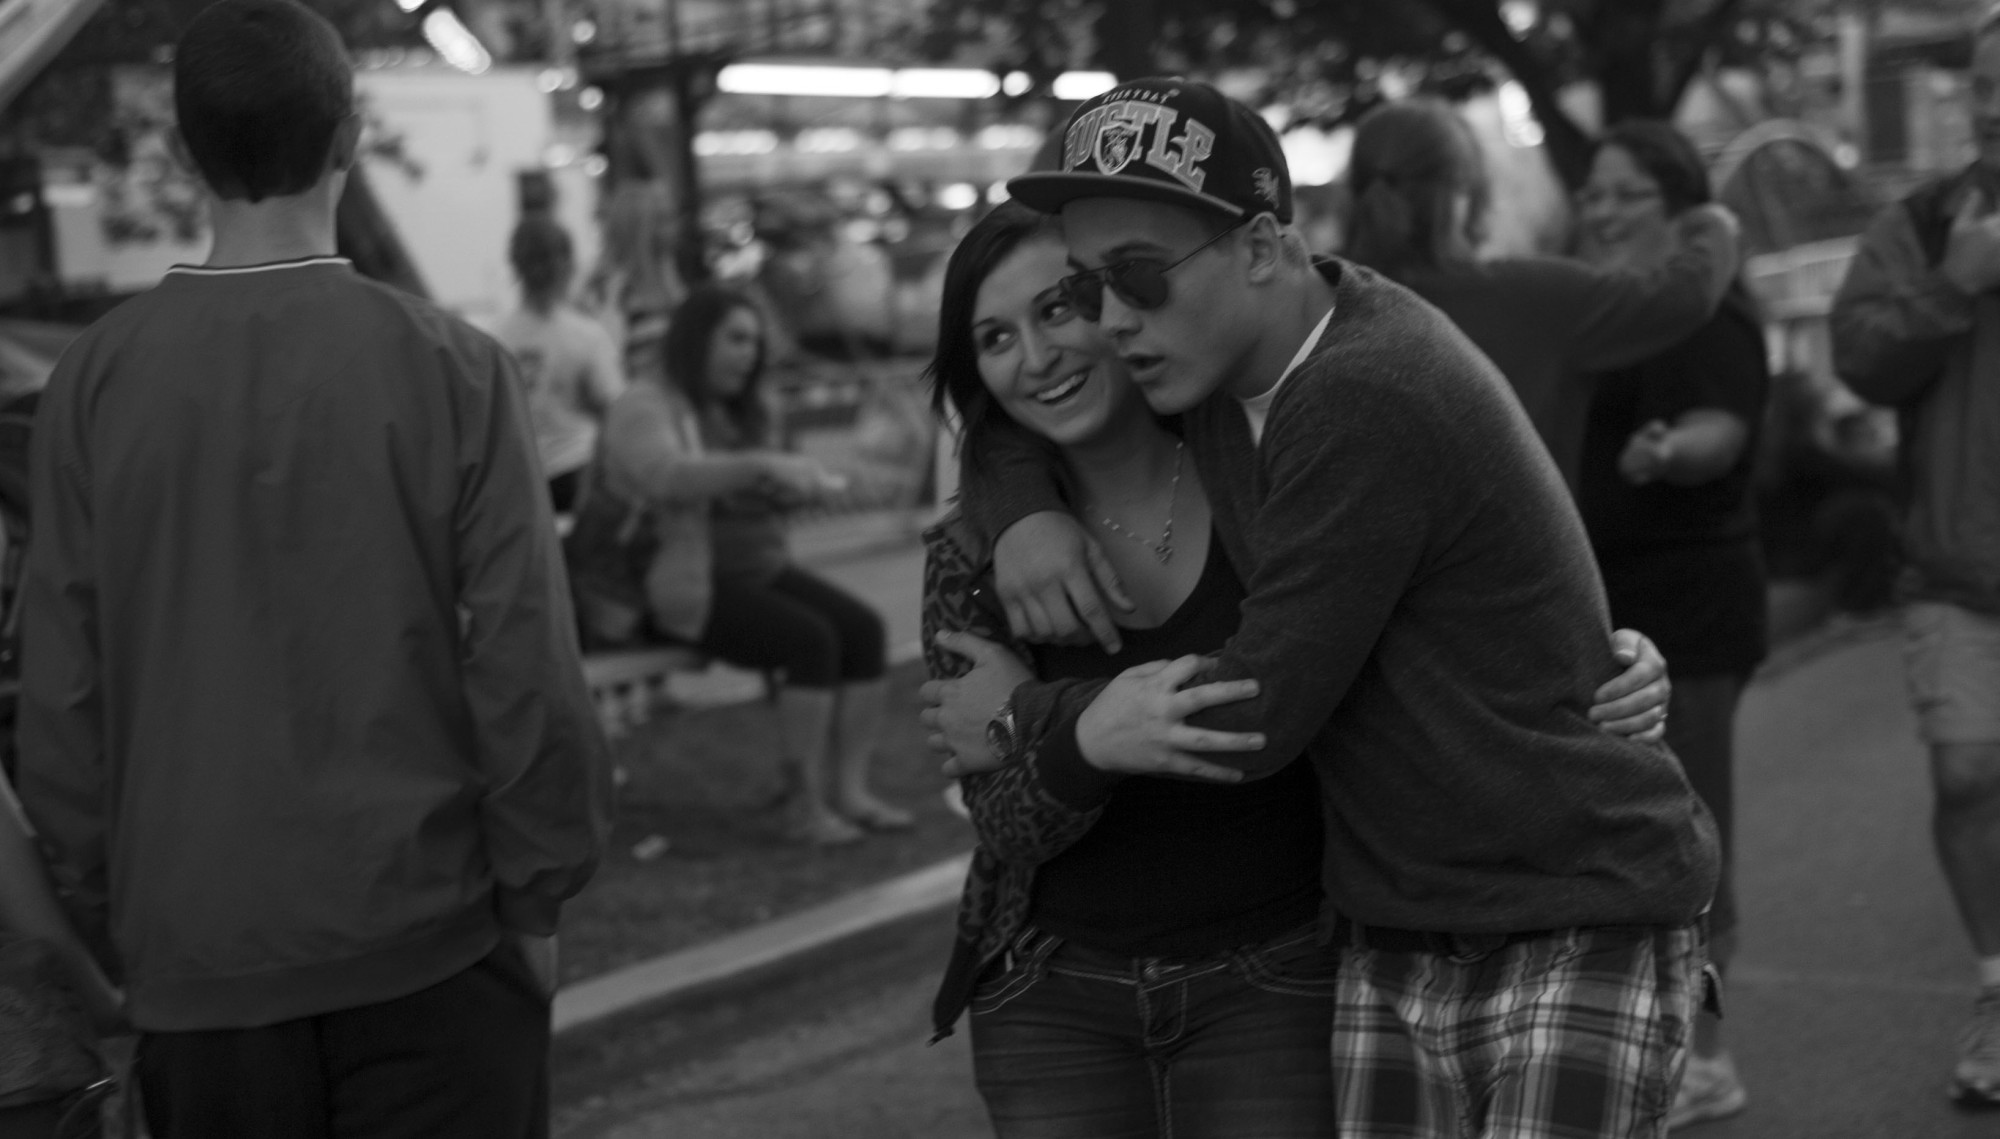 A young couple embraces during the Summer Fest in Evansville, Indiana.